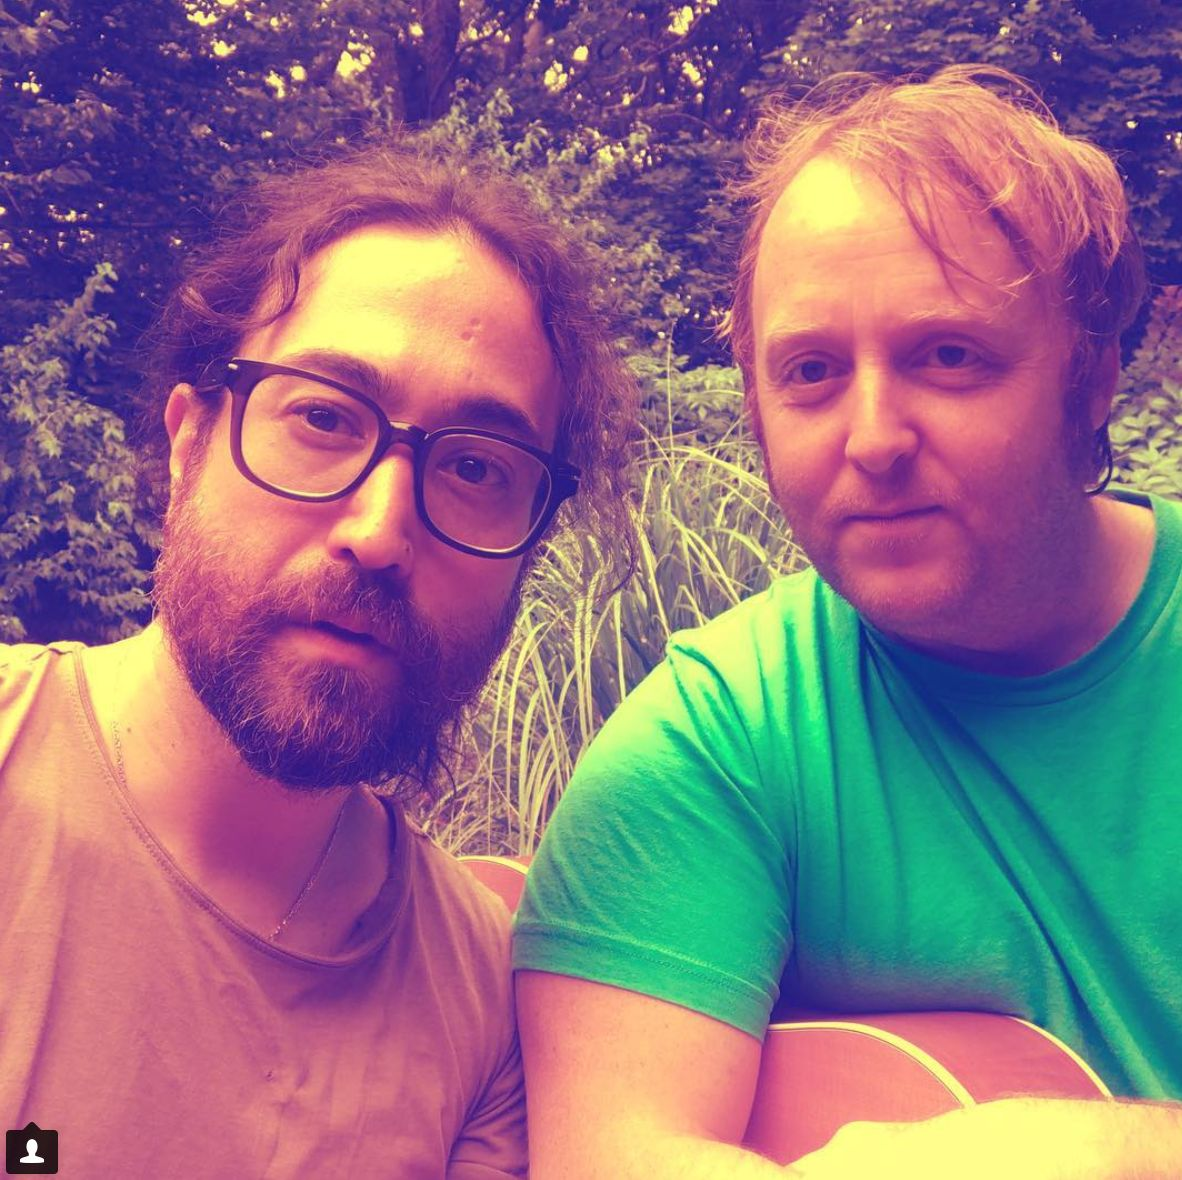 John Lennon And Paul McCartney's Sons Channel Famous Fathers In